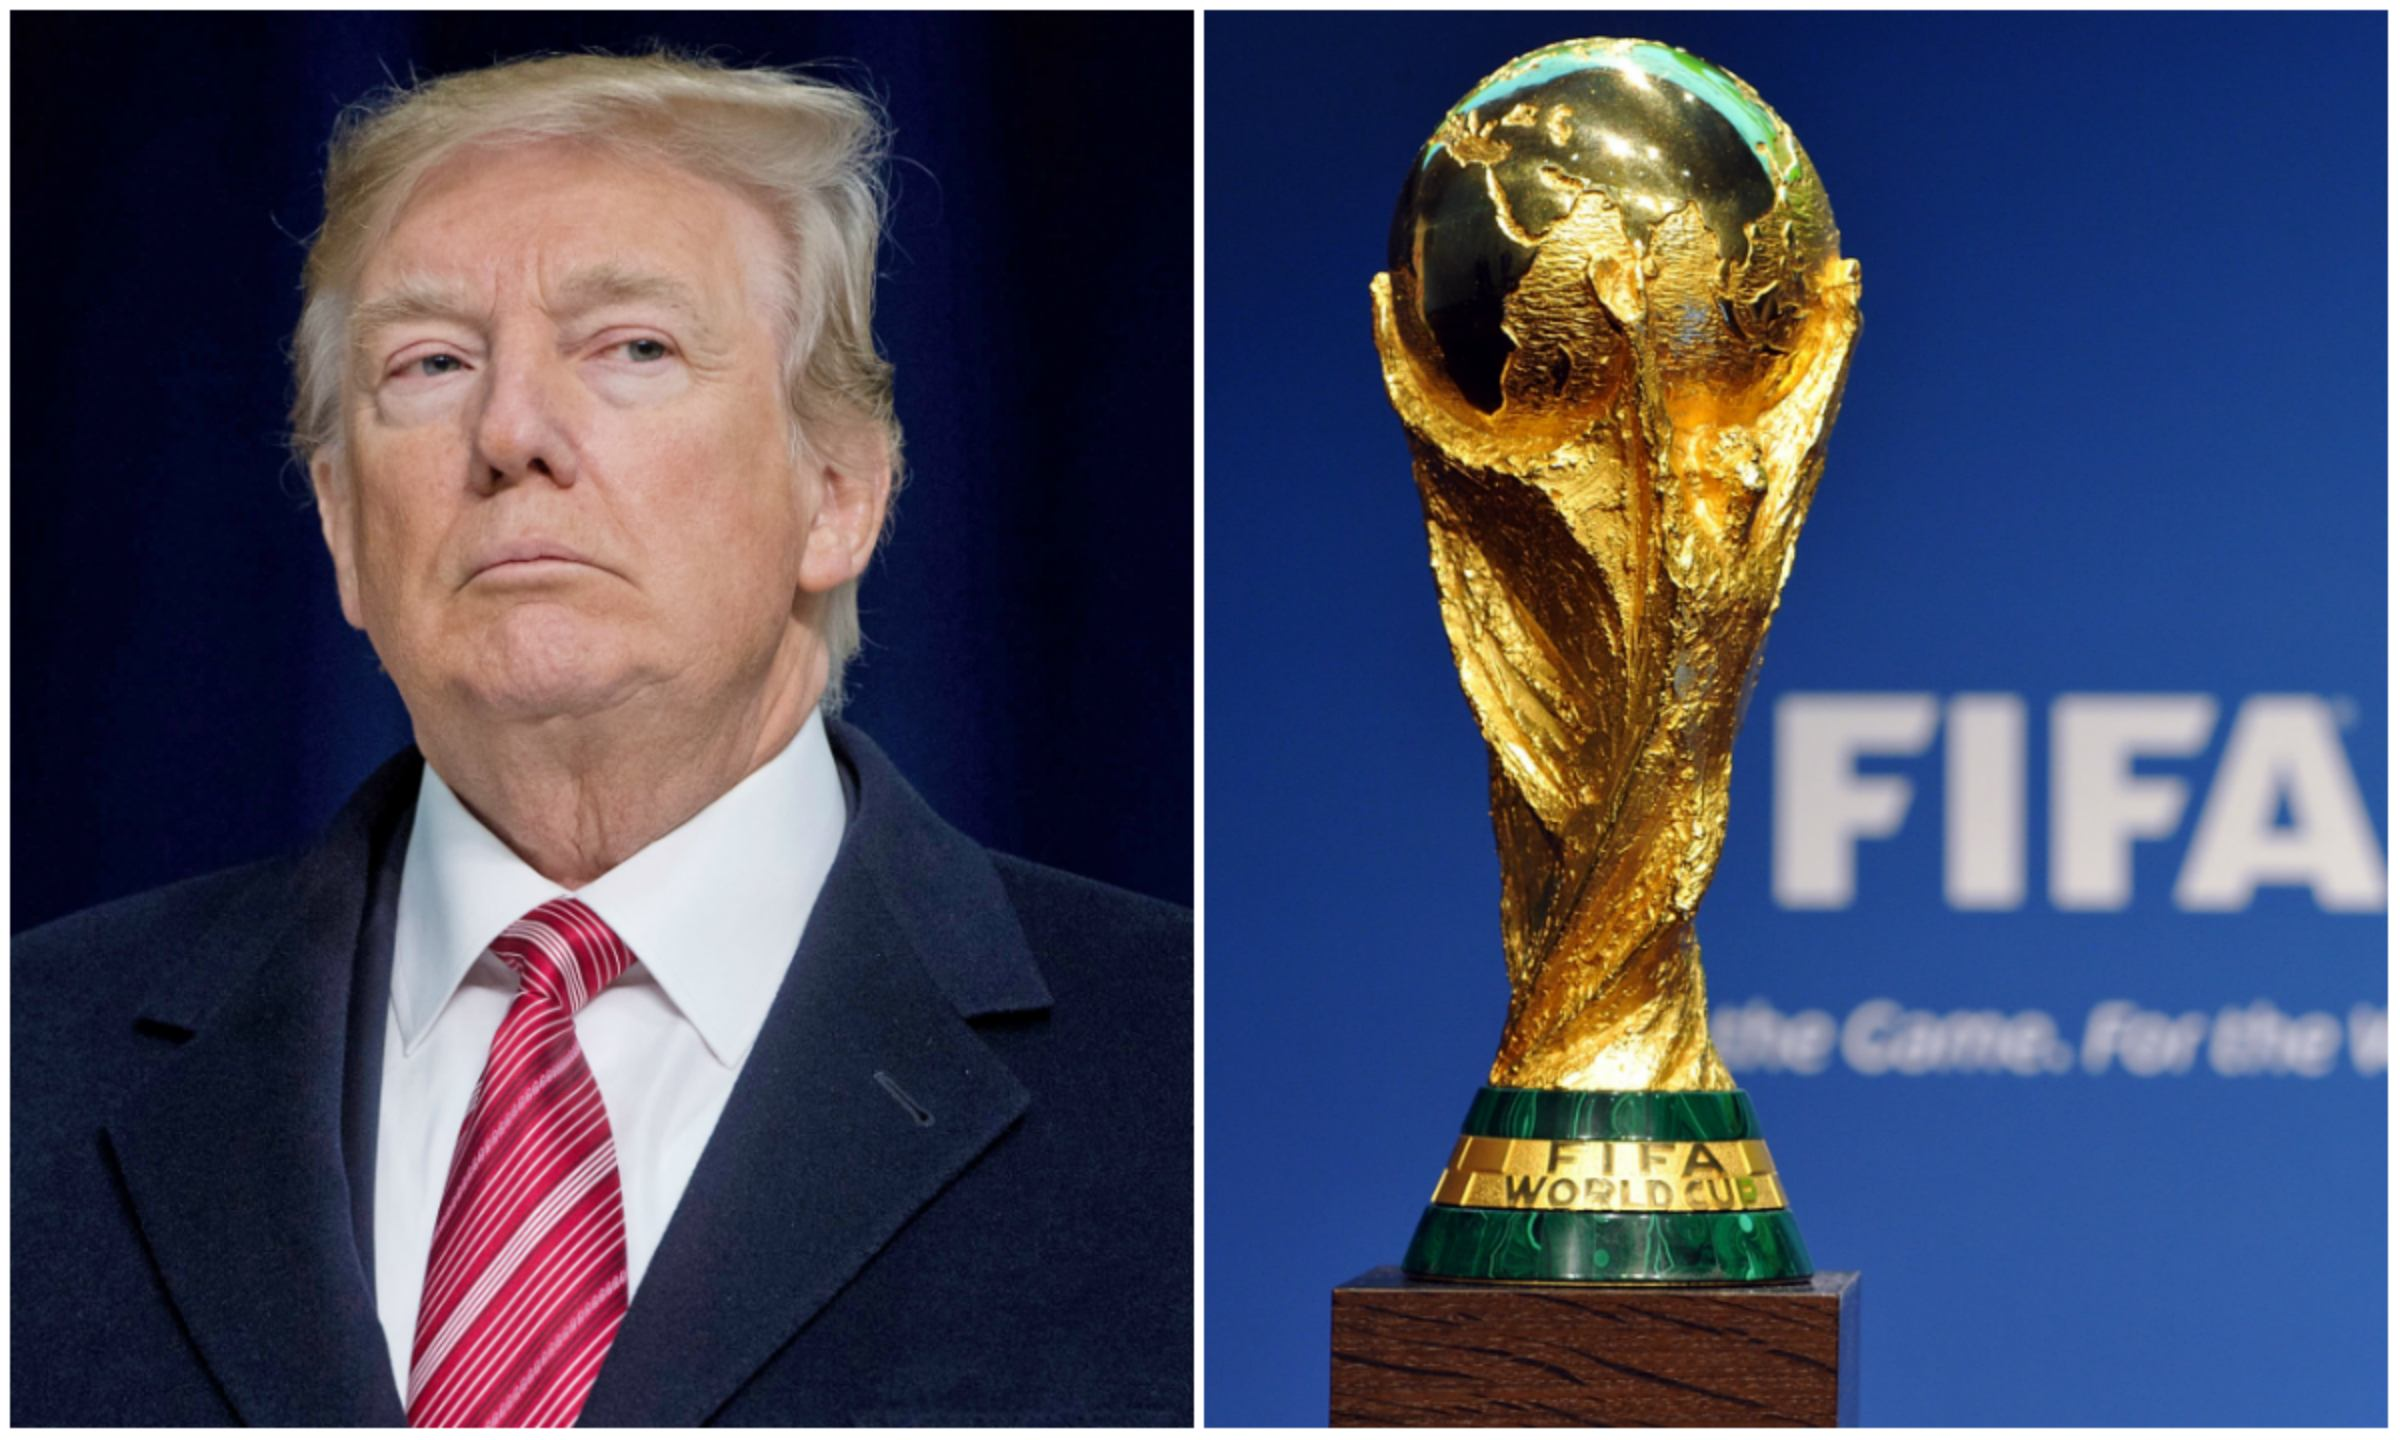 2026 World Cup host Donald Trump